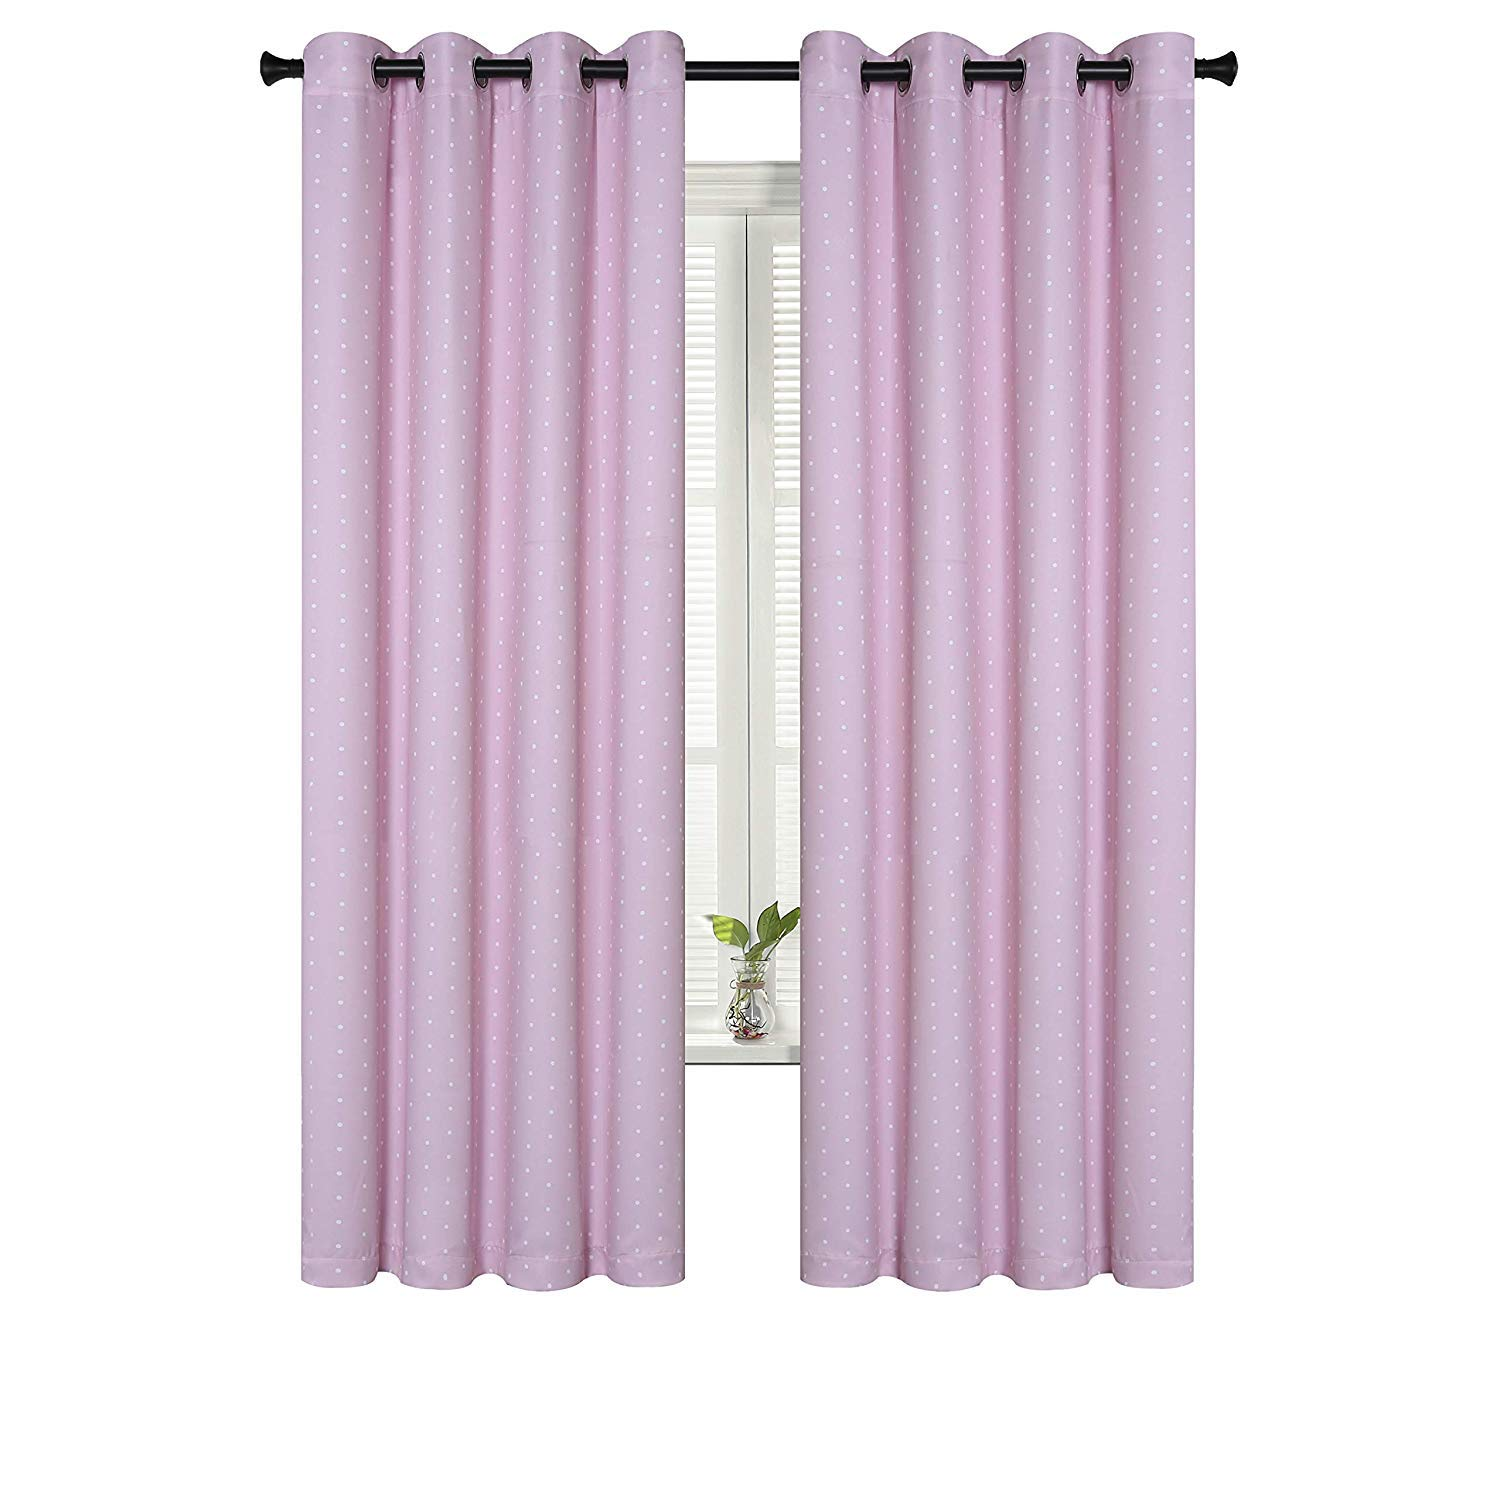 Buy Suo Ai Textile Circle Print Curtains Room Darkening Rod Pocket Curtain Panels For Girls Room 52x95 Inch Pink And White Set Of 2 Online At Low Prices In India Amazon In